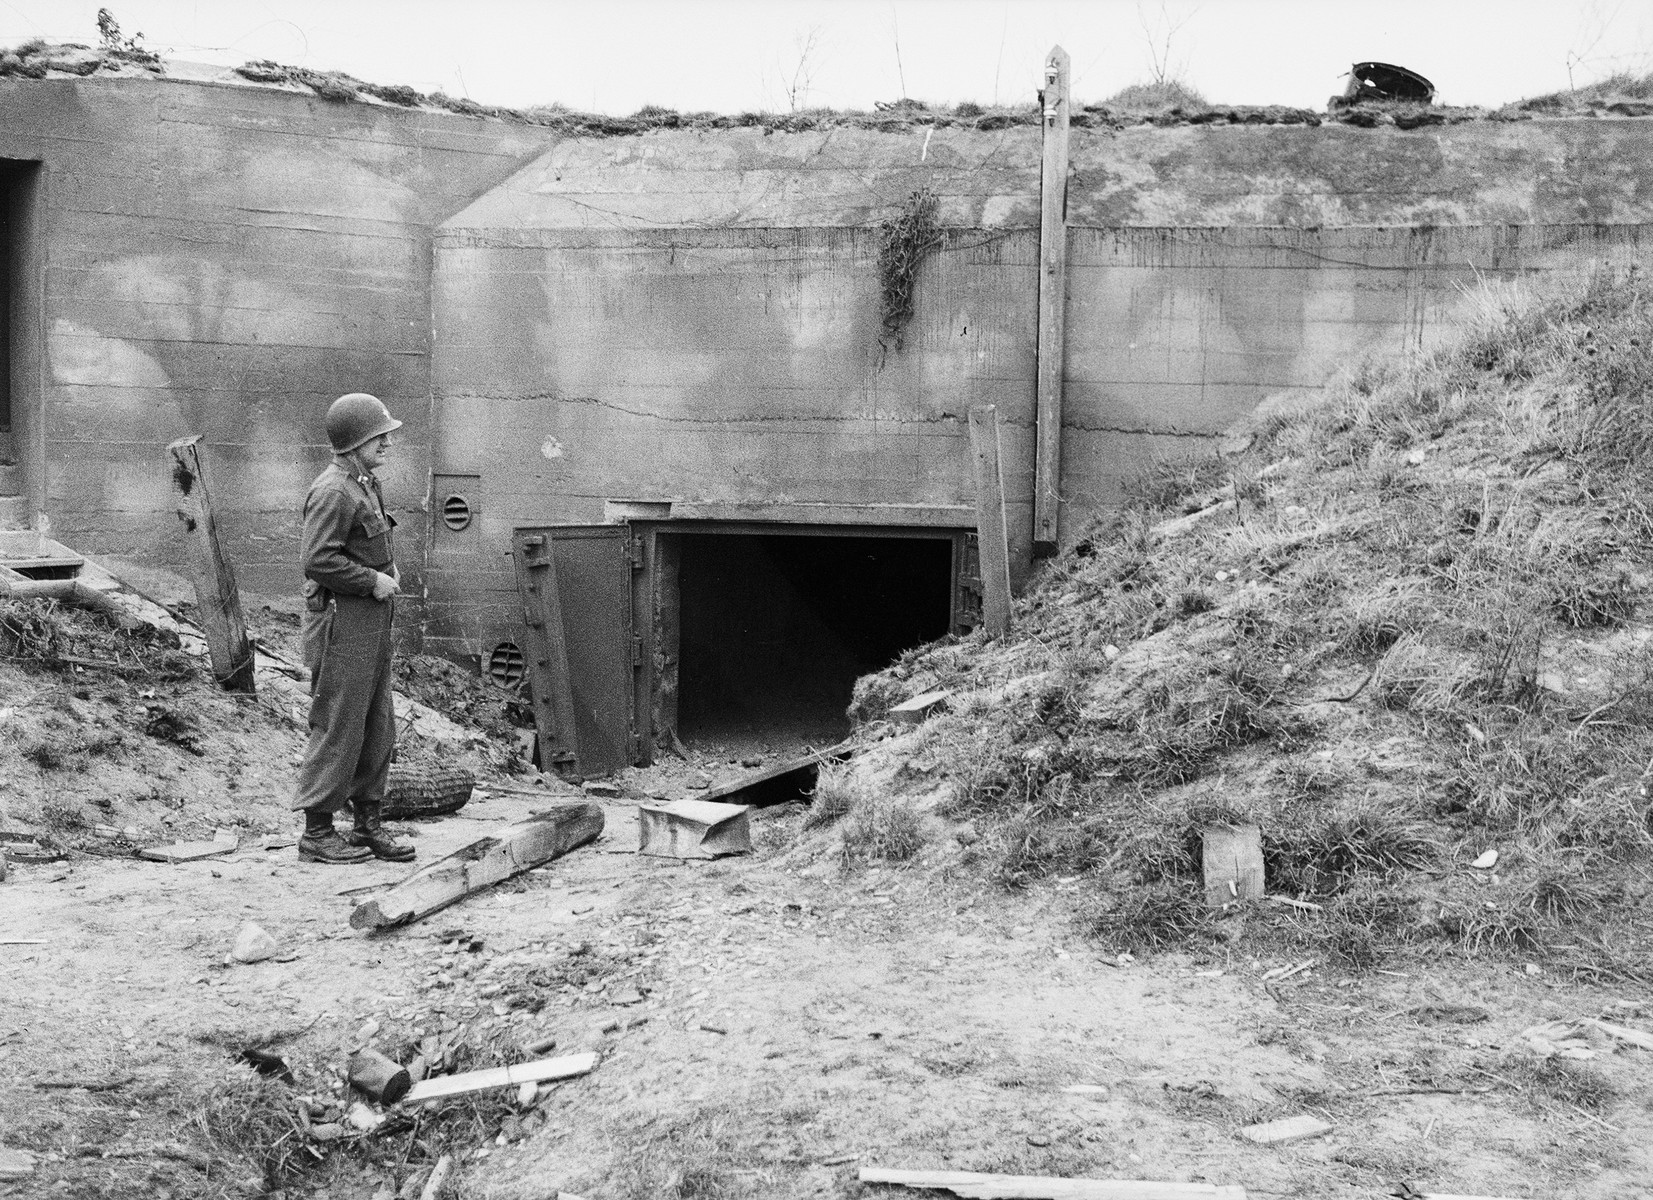 A medical officer with the U.S. Army's 45th Evacuation Hospital poses before the entrance of a fortified bunker after the Invasion of Normandy.